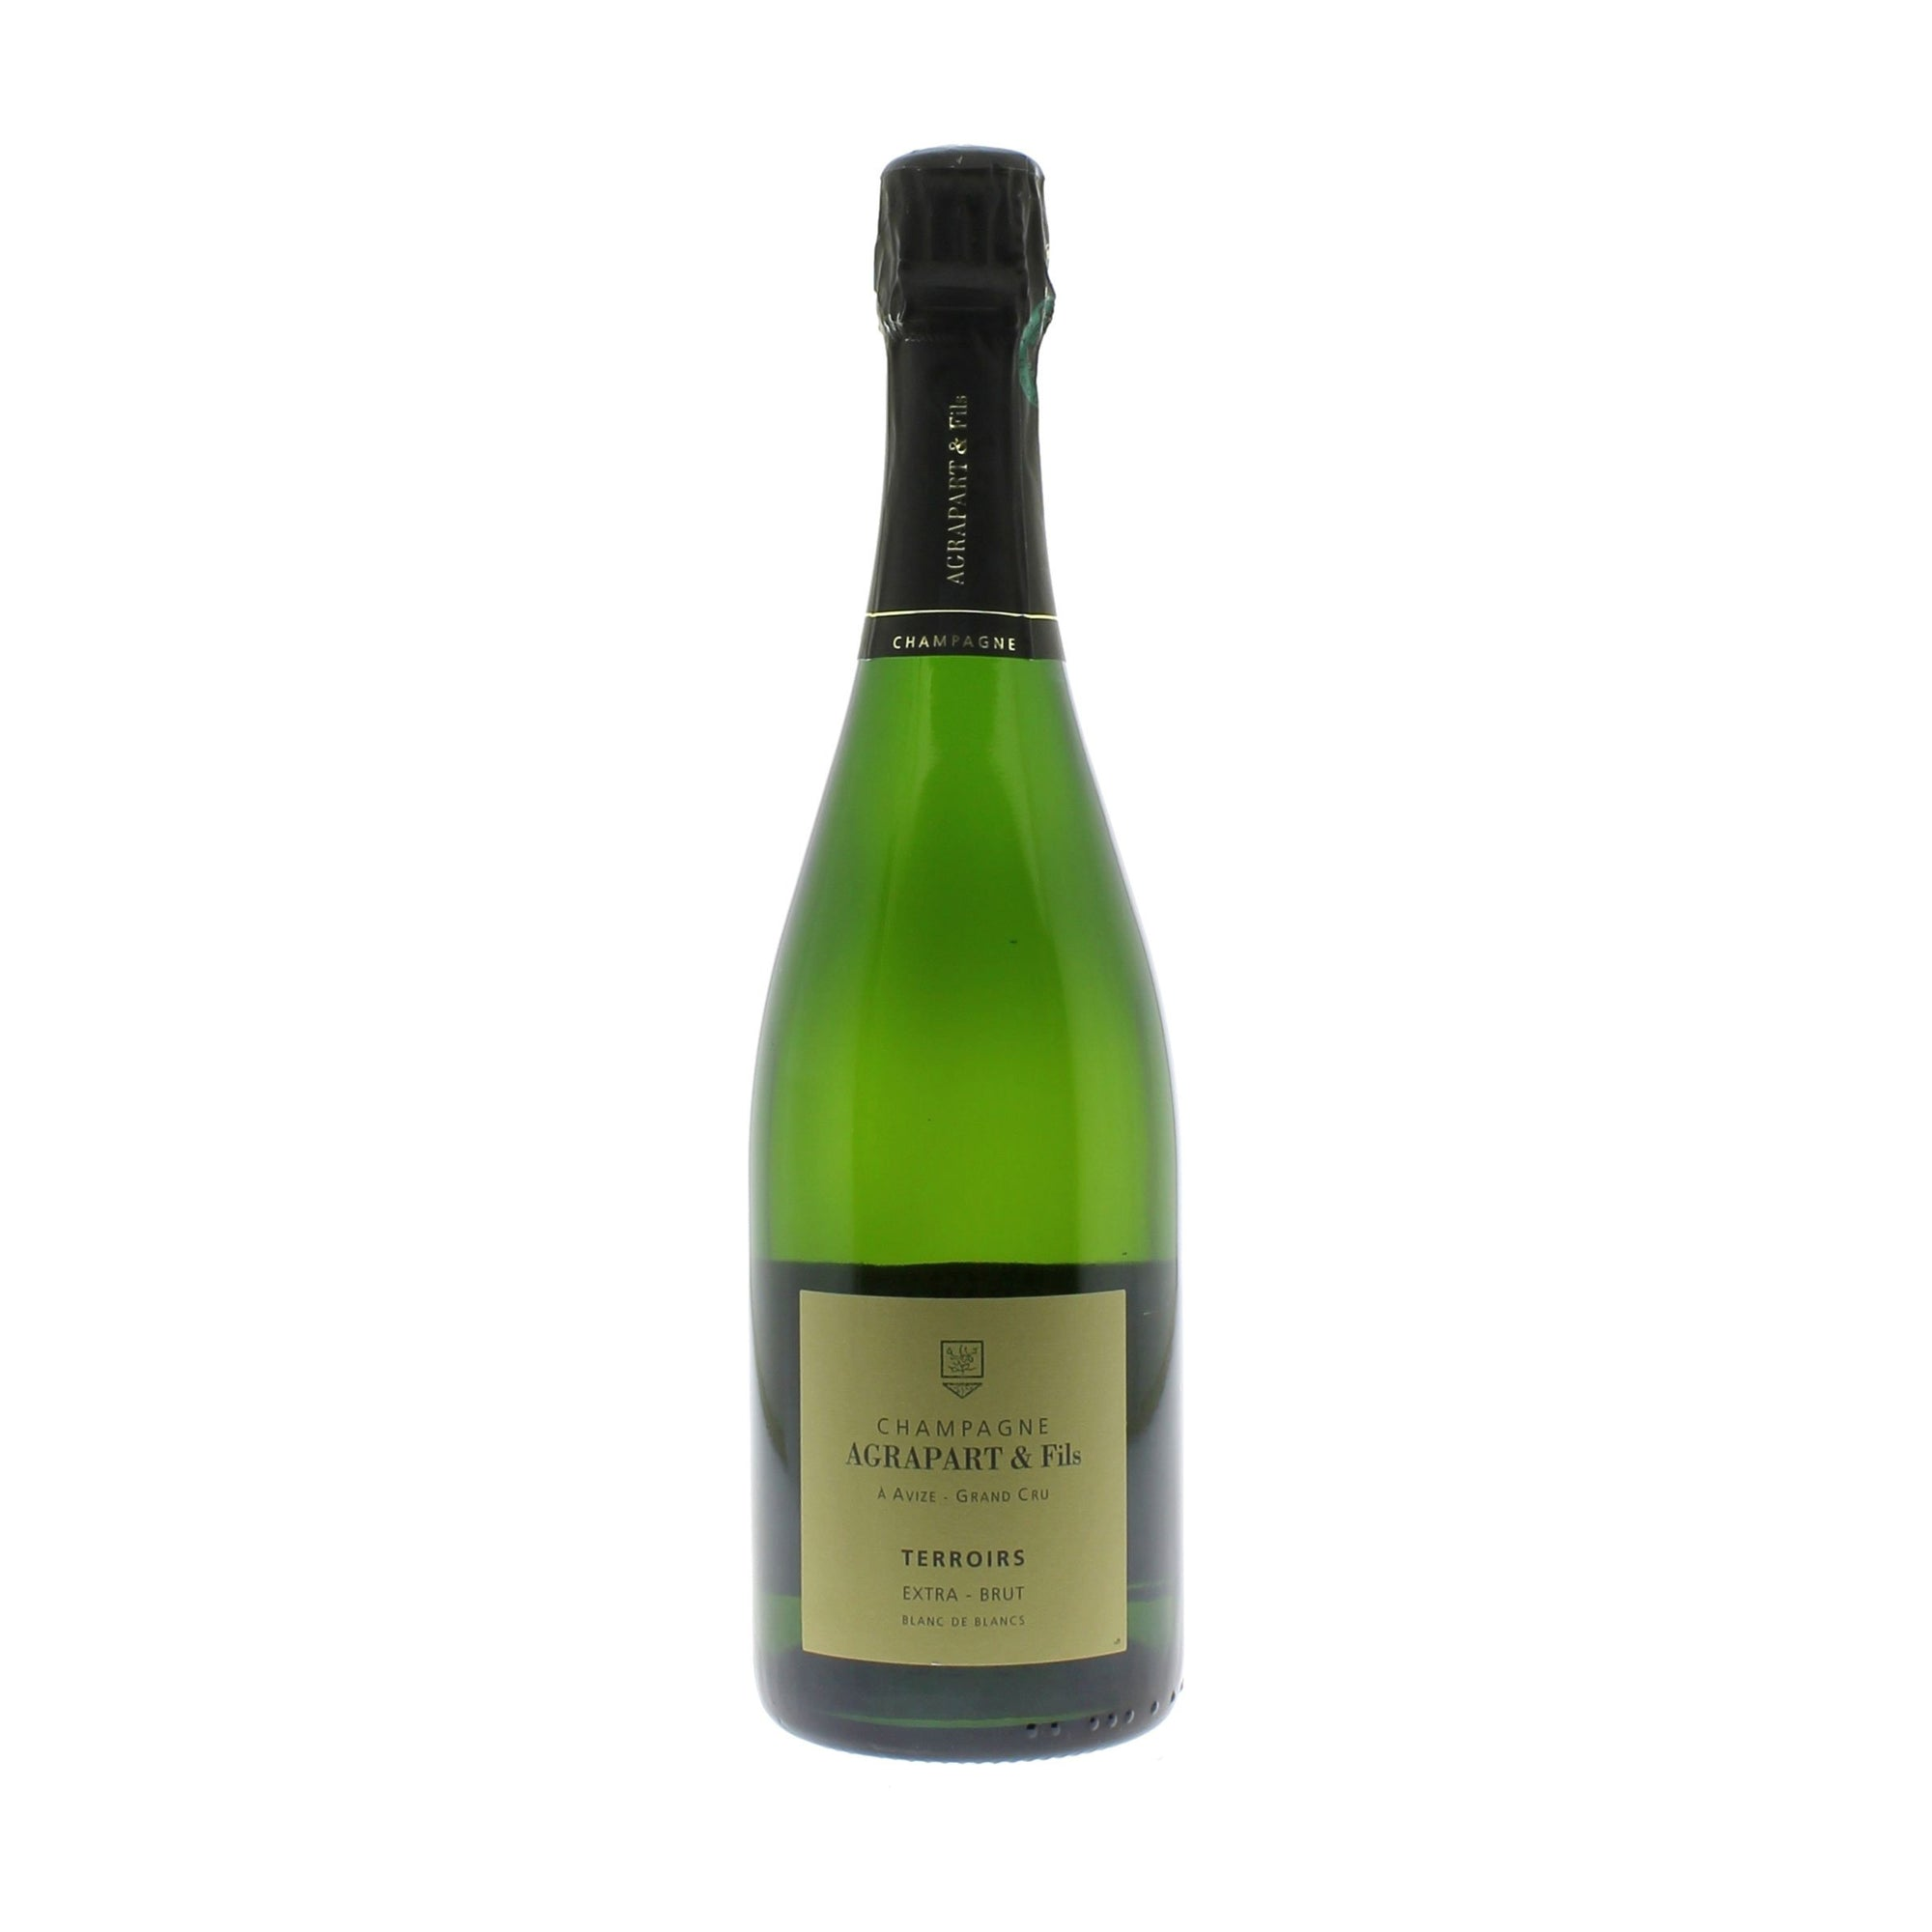 Sparkling Champagne Agrapart 'Terroirs' Extra Brut NV (4398162378775)